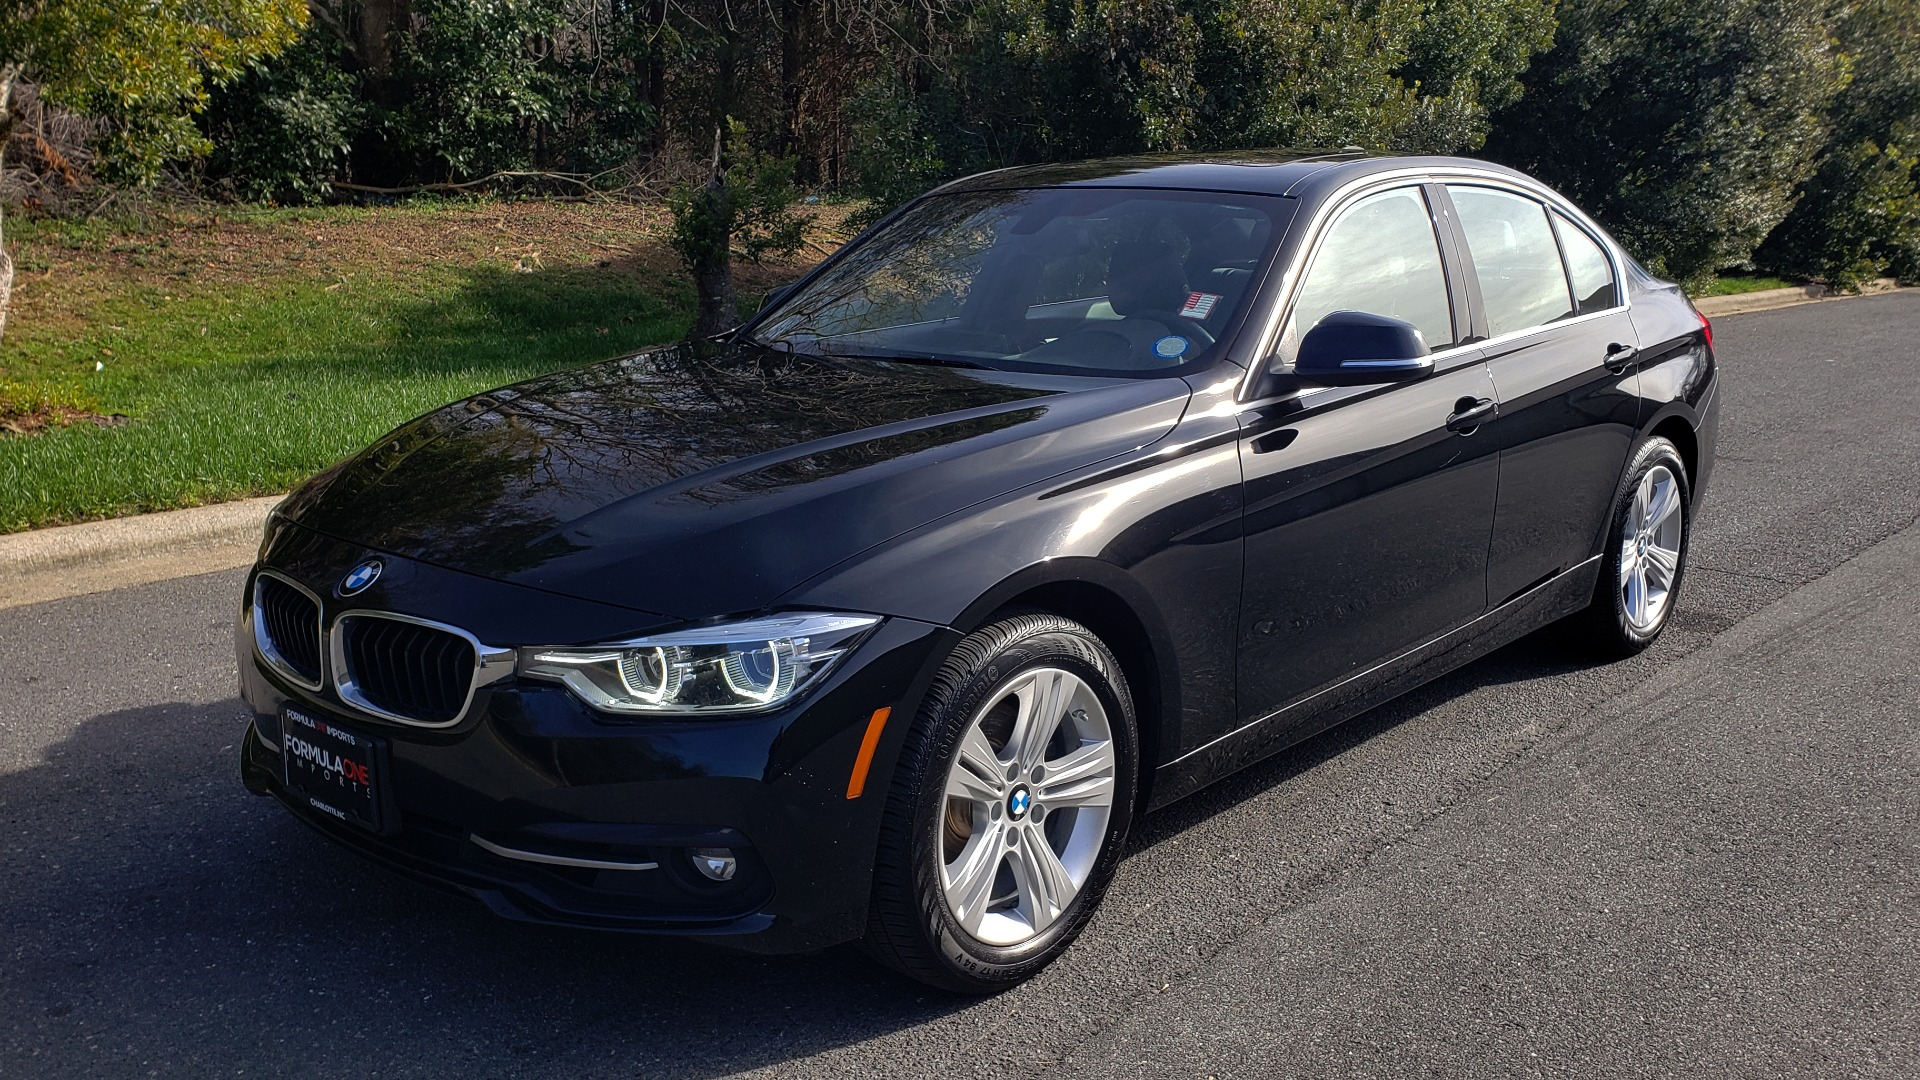 Used 2018 BMW 3 SERIES 330I XDRIVE / CONV PKG / NAV / DRVR ASST / CLD WTHR / REARVIEW for sale $25,995 at Formula Imports in Charlotte NC 28227 1